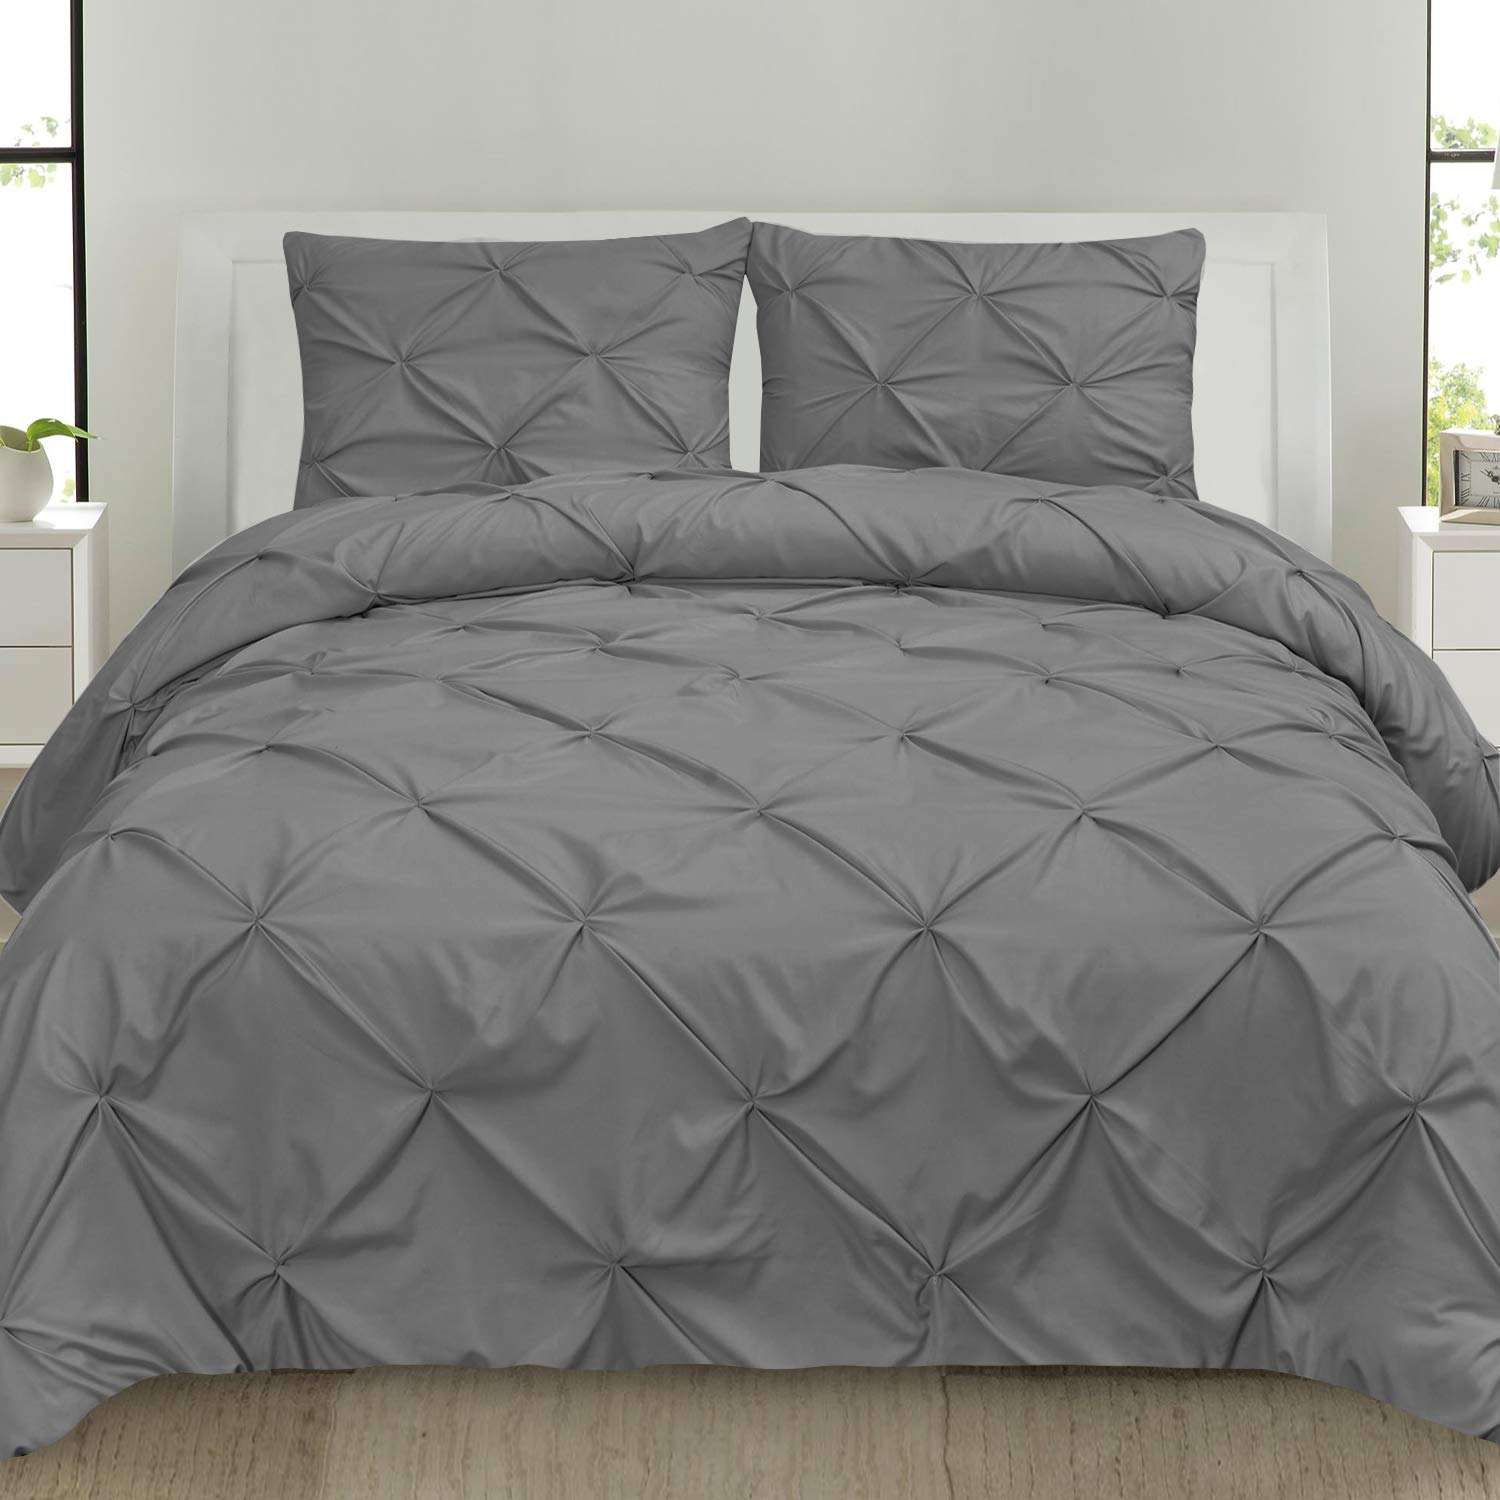 Sweet Home Collection 3 Piece Luxury Pinch Pleat Pintuck Fashion Duvet Set, Queen, Gray